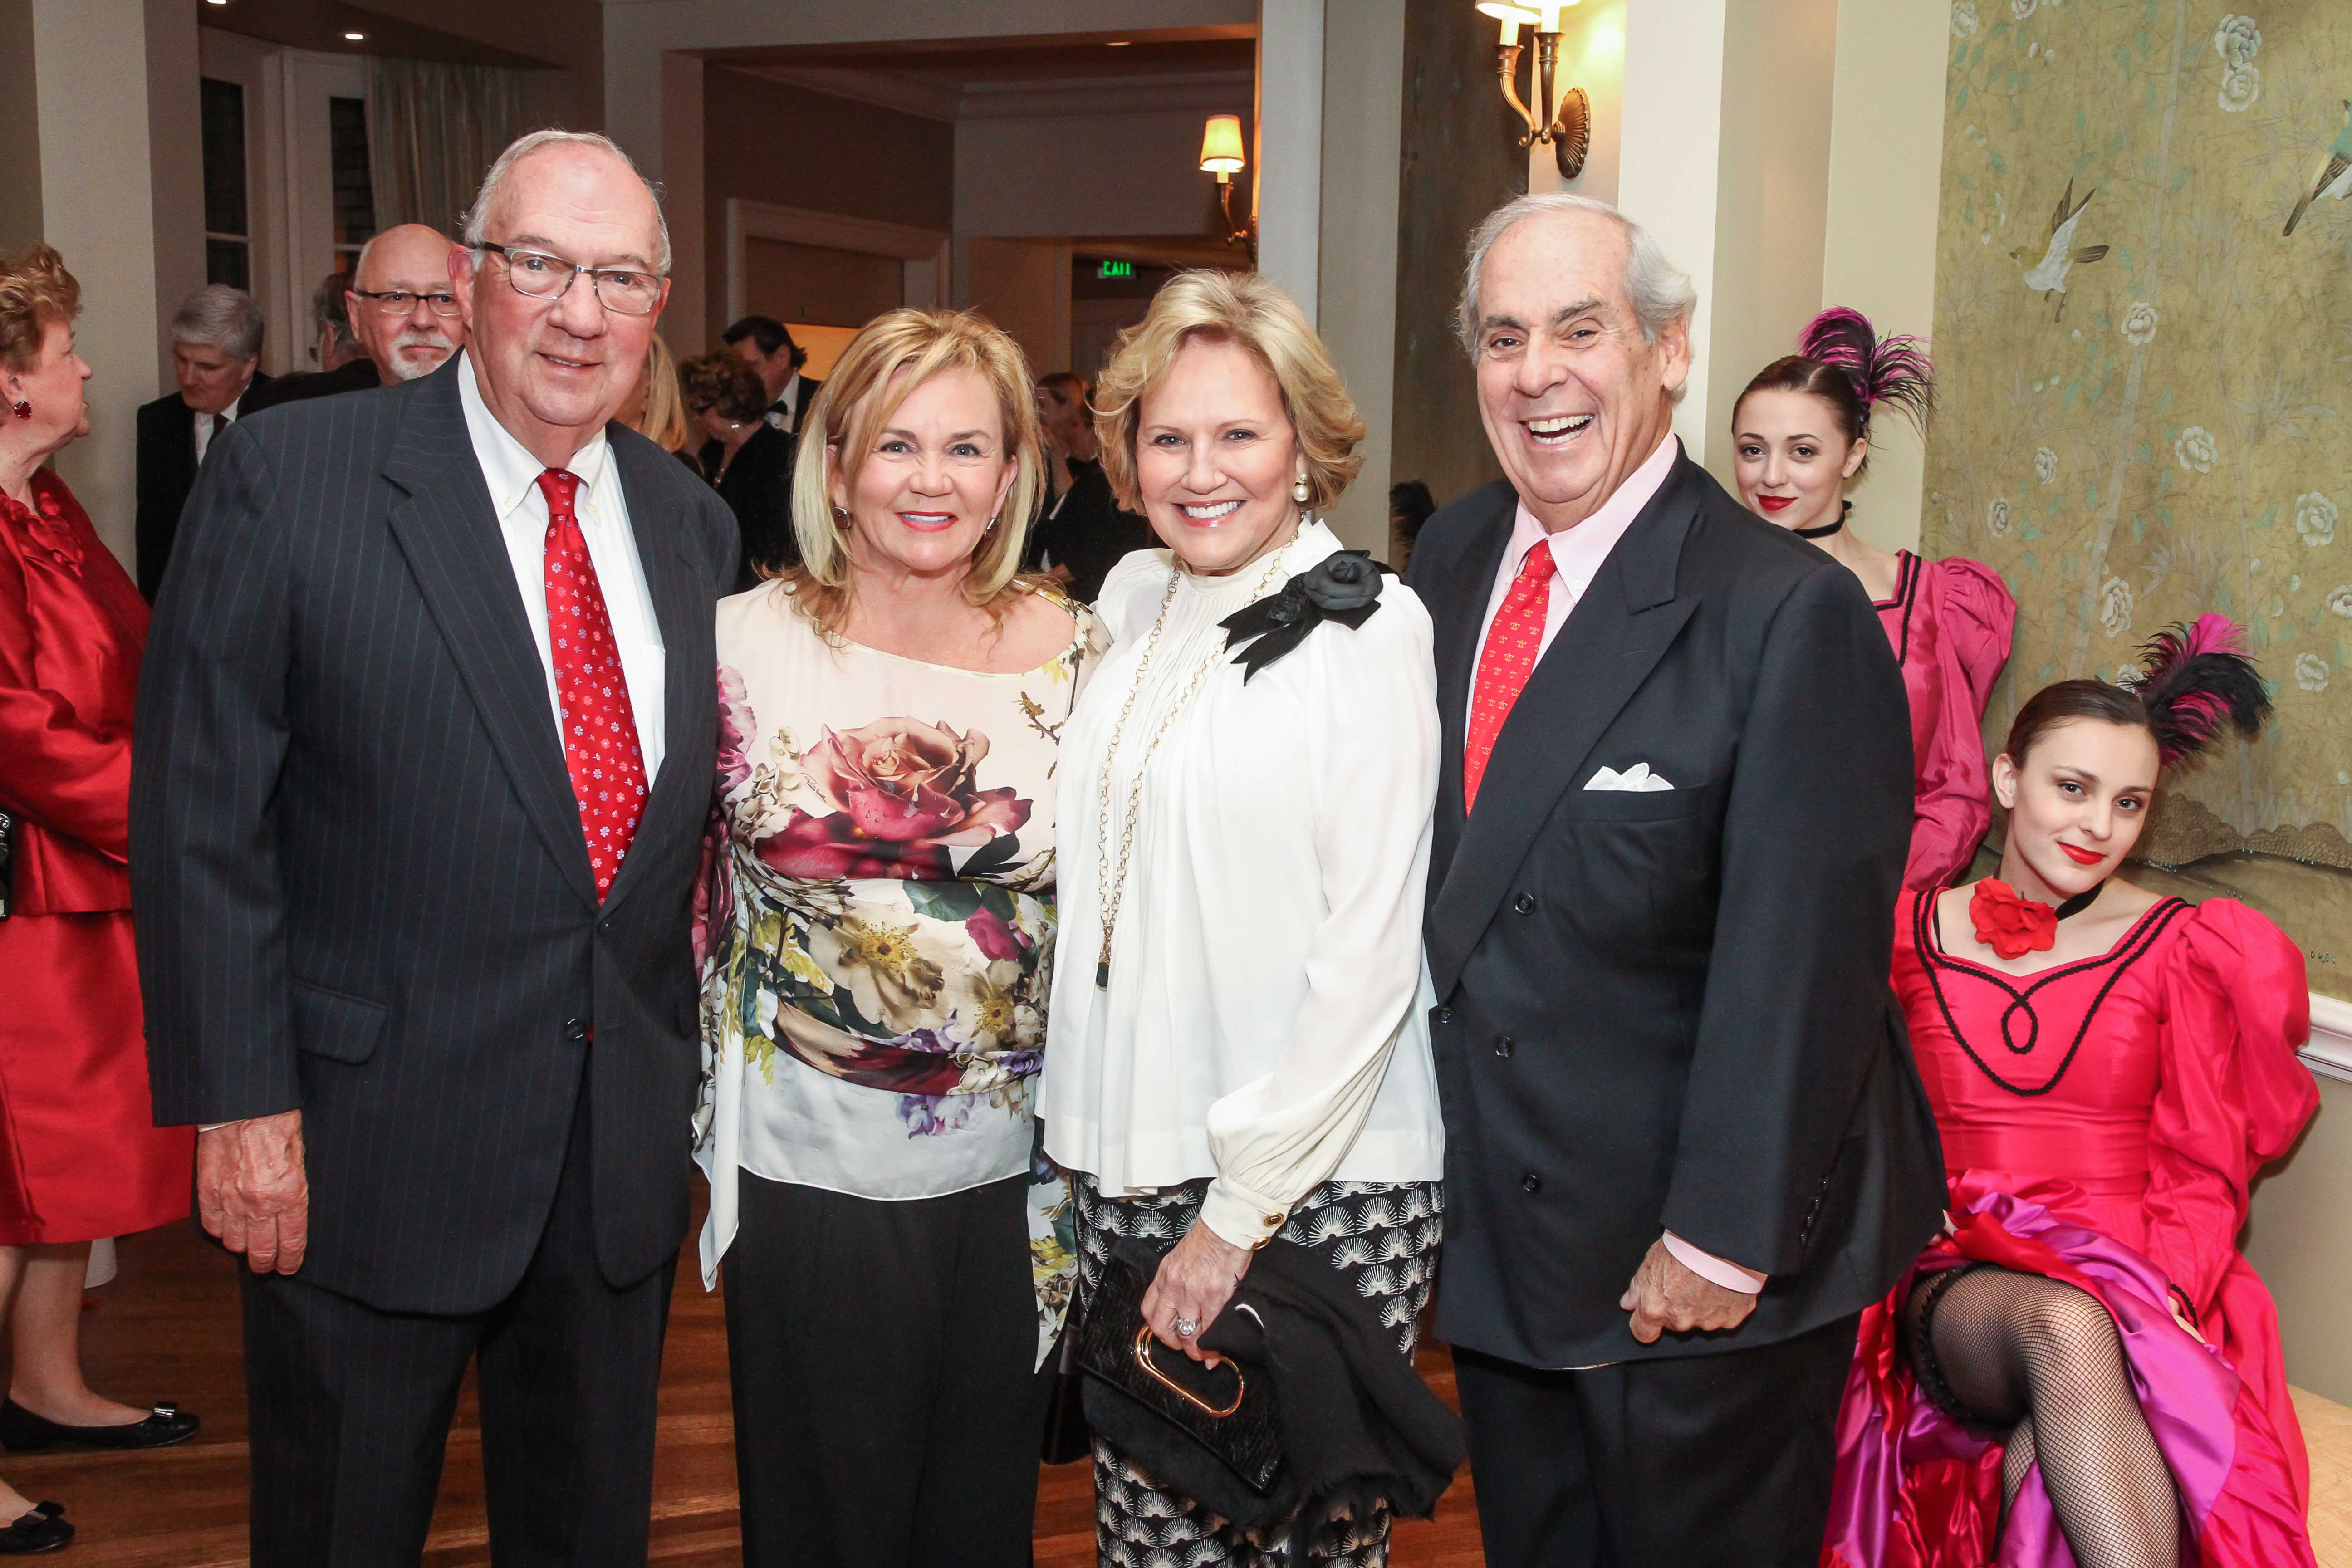 Rolanette and Berdon Lawrence with Debbie and John Daugherty